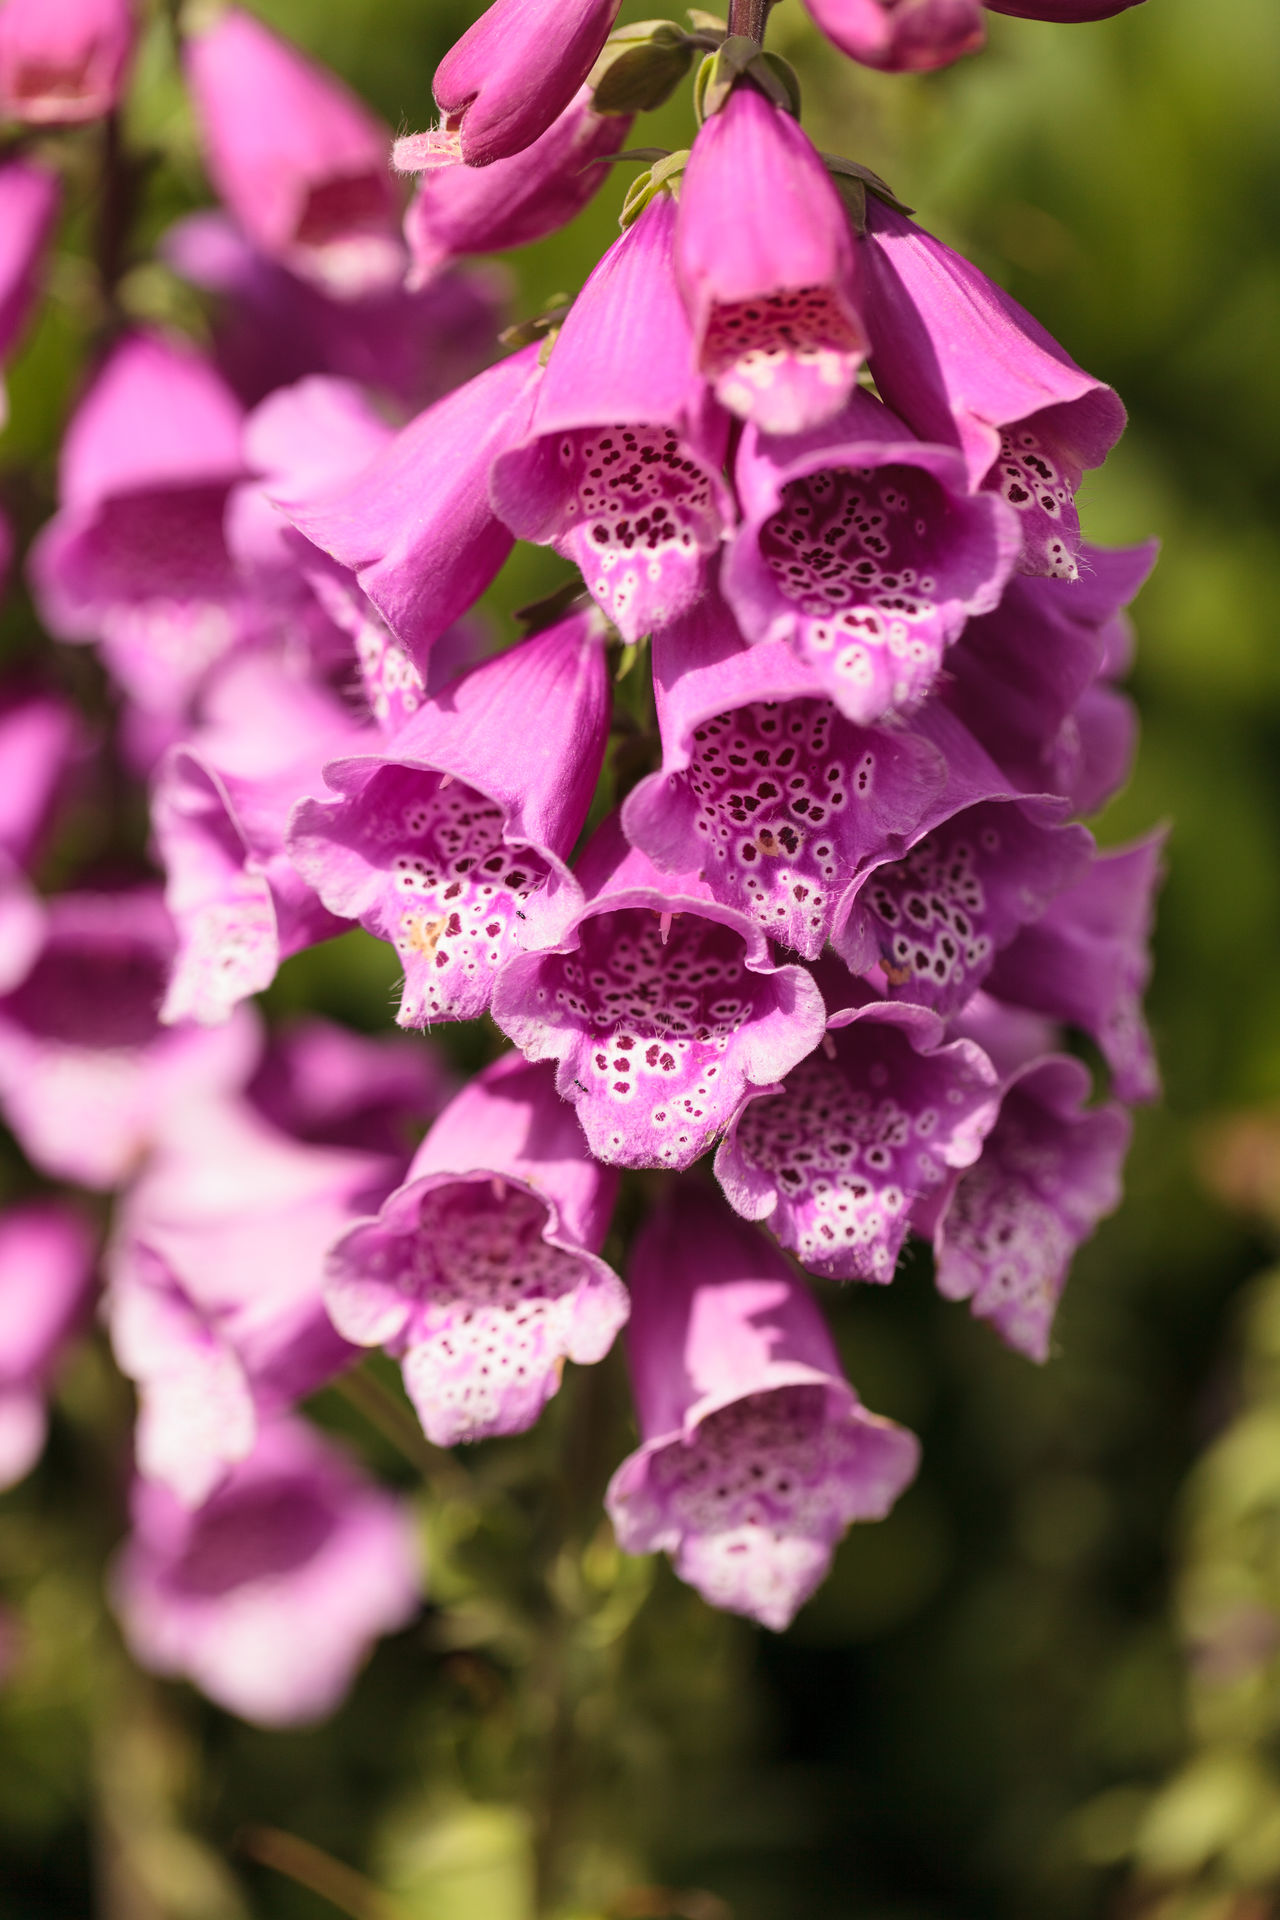 Tall purple, pink, peach and white foxglove flower, Digitalis purpurea, blooms in a botanical garden in spring. Beauty In Nature Close-up Day Digitalis Purpurea Flower Flower Head Flowers Foxglove Garden Nature No People Orchid Outdoors Peach Plant Purple